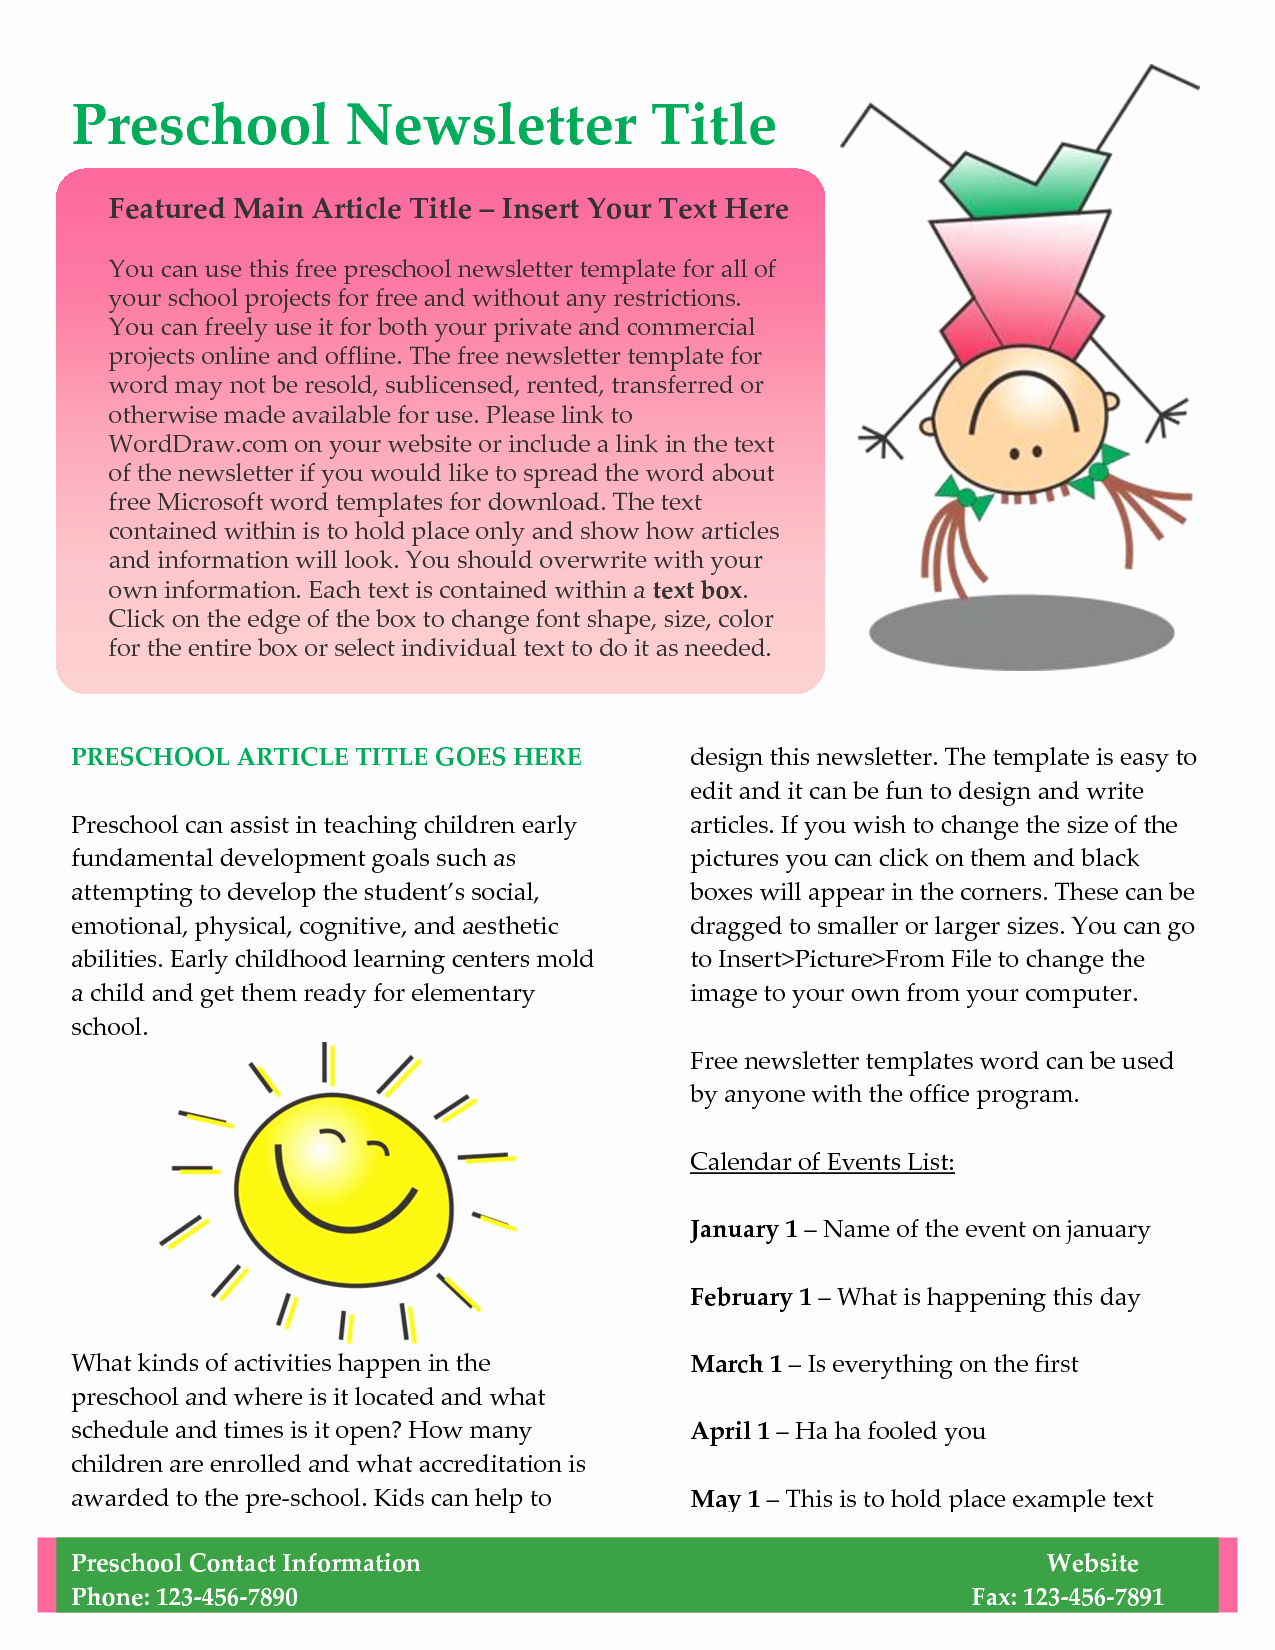 Preschool Newsletter Templates Free New Preschool Newsletter Template